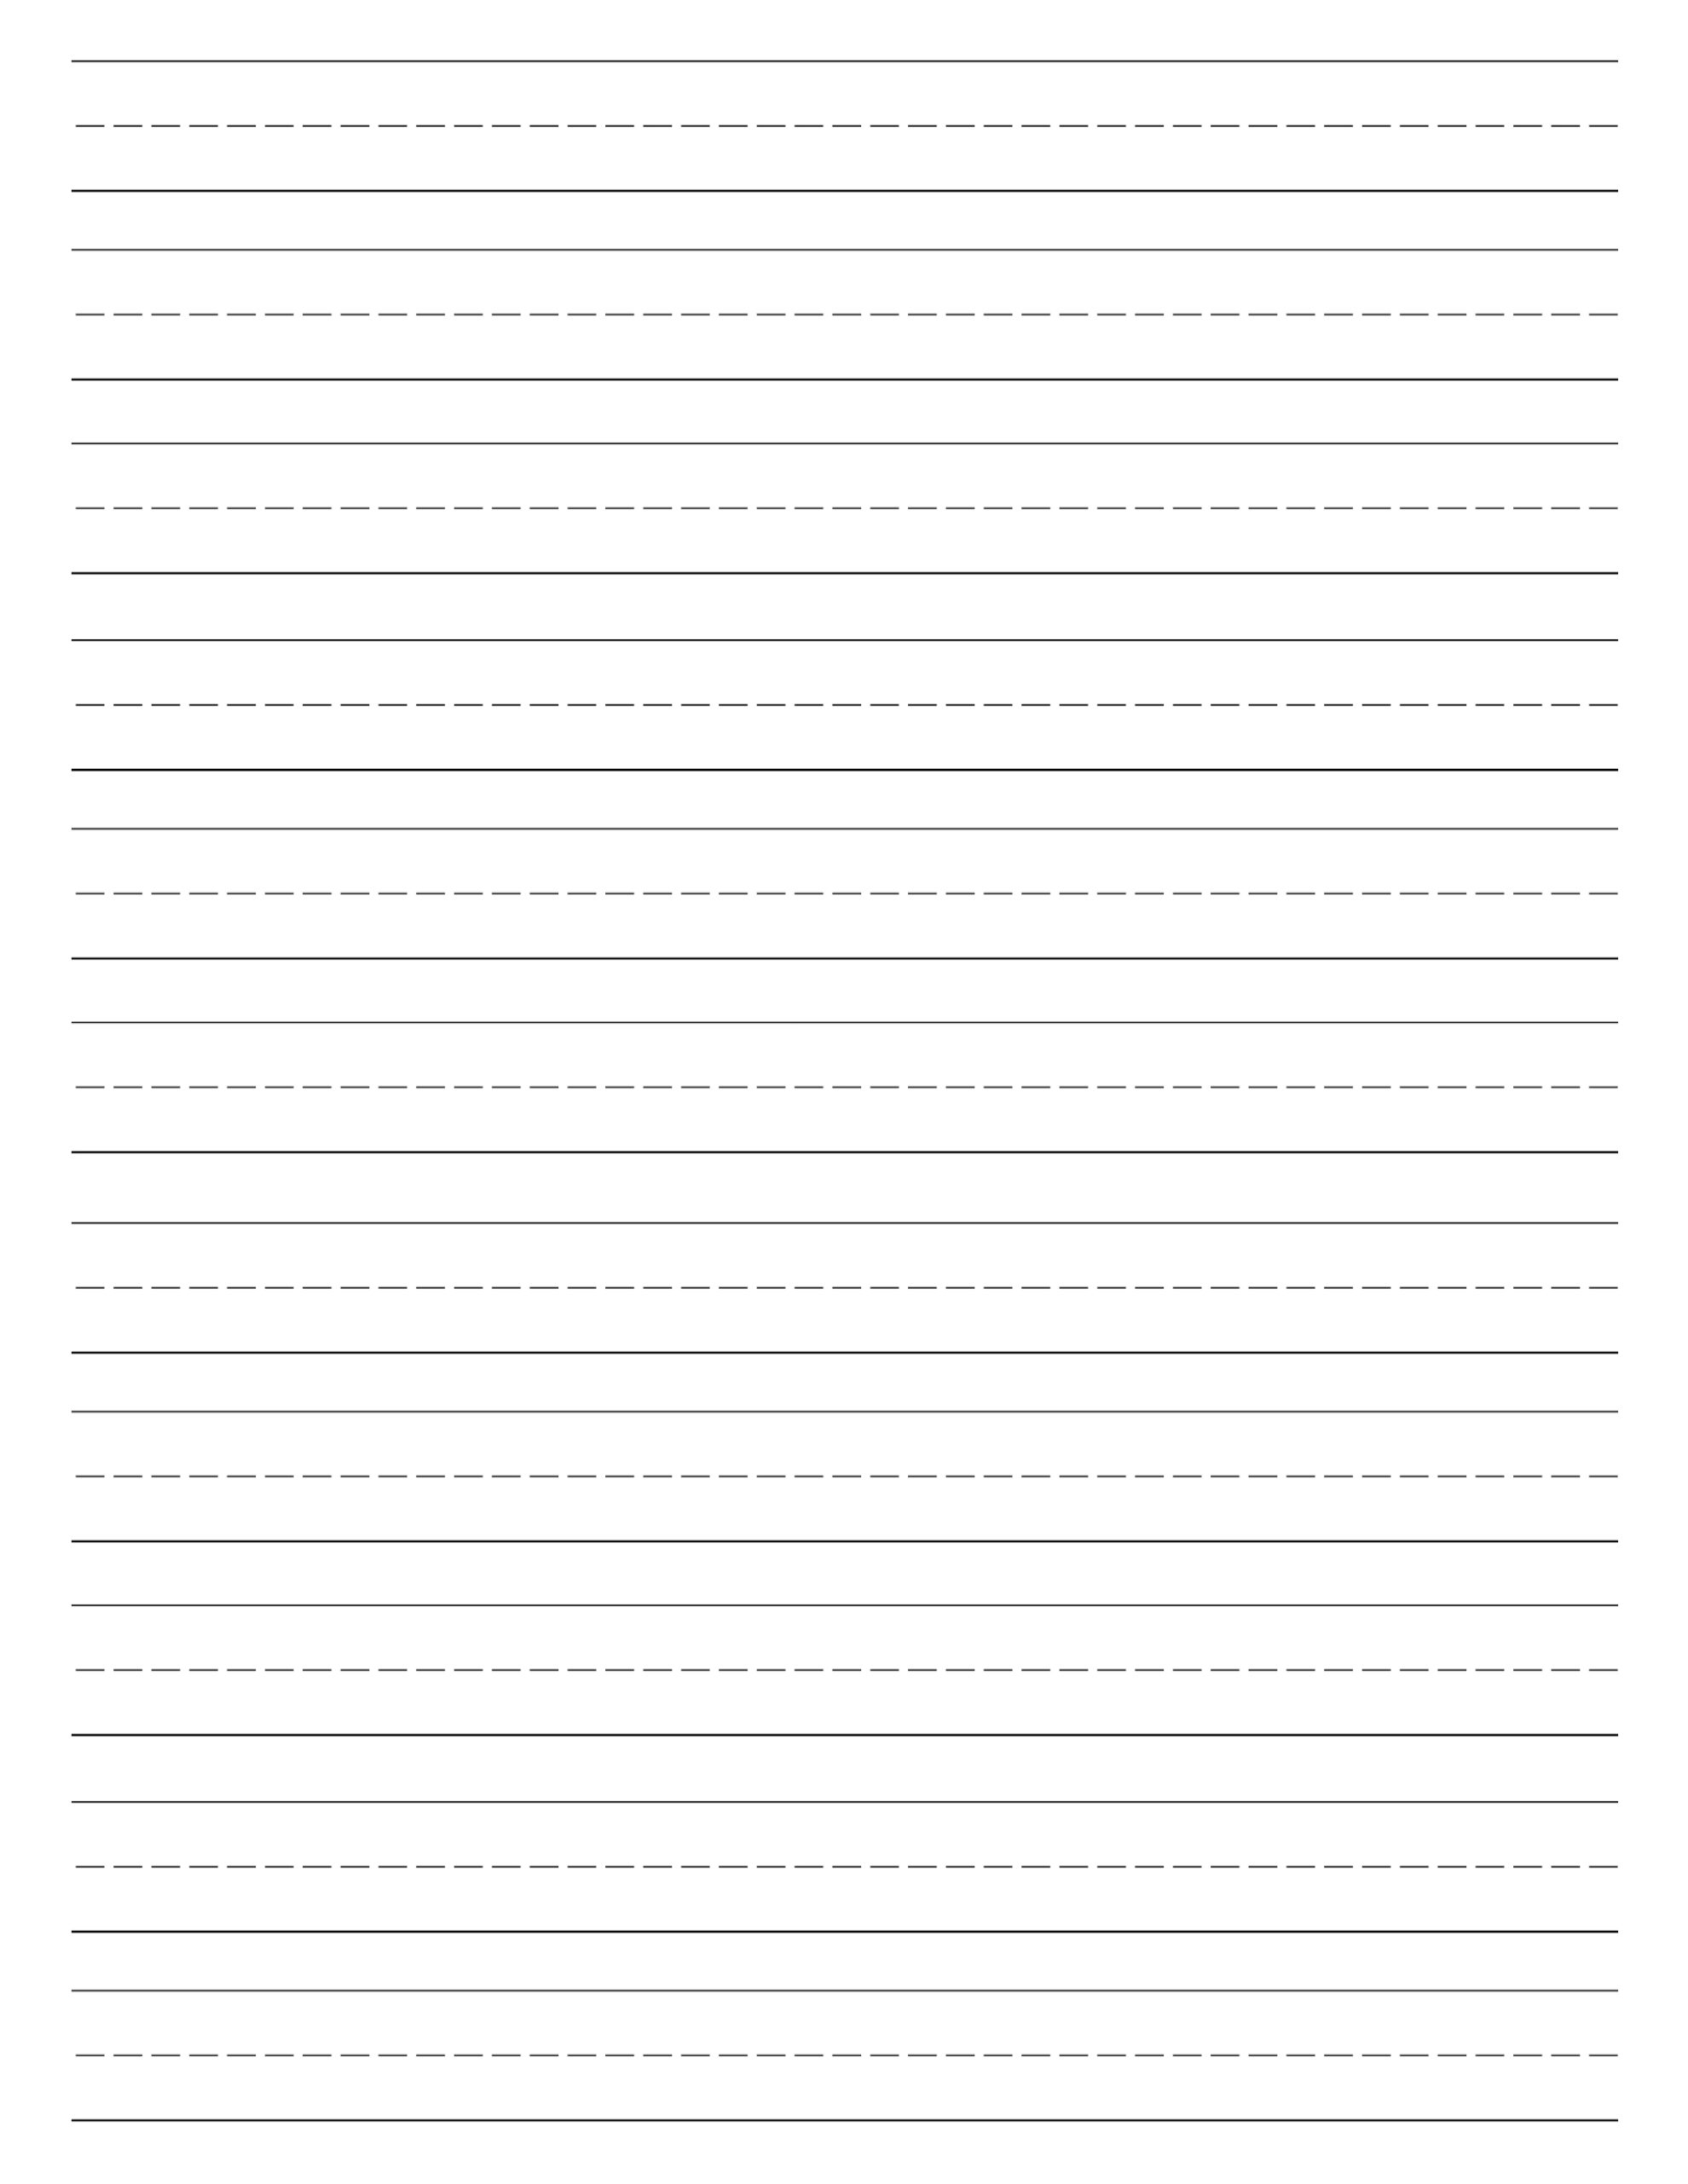 Printable Lined Paper For Kindergarten Writing Custom